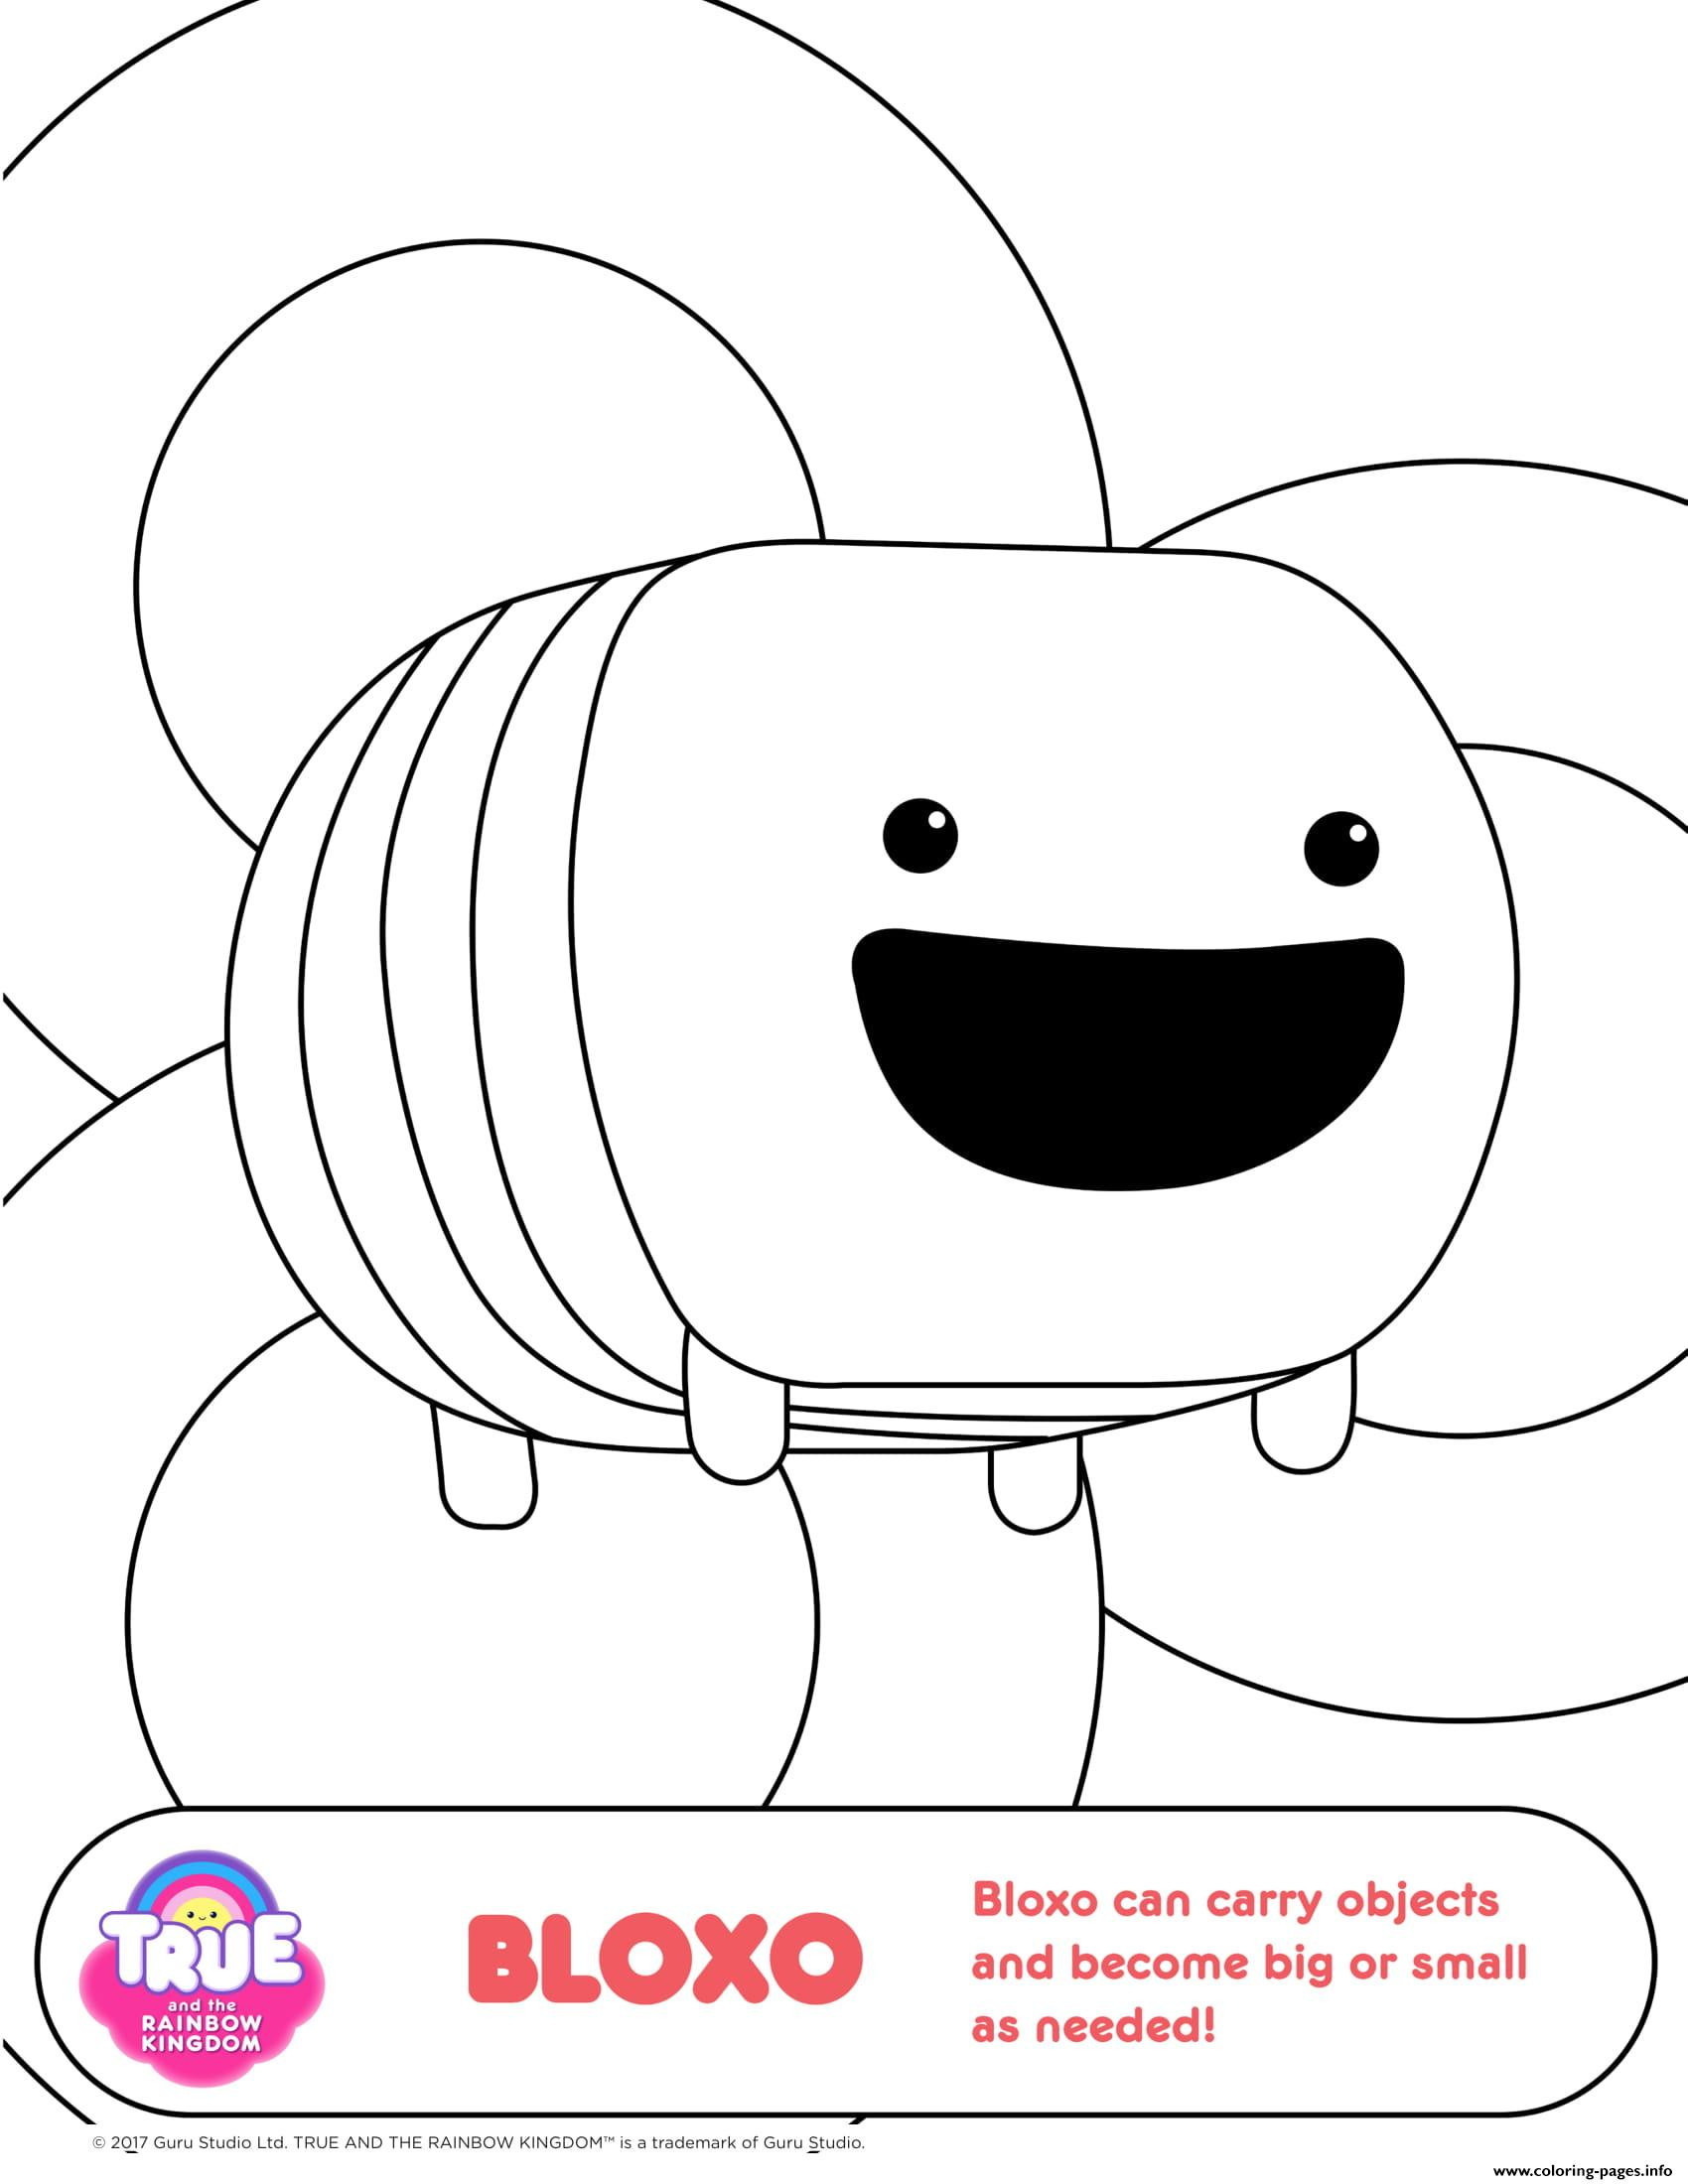 560 True Cartoon Coloring Pages Images & Pictures In HD